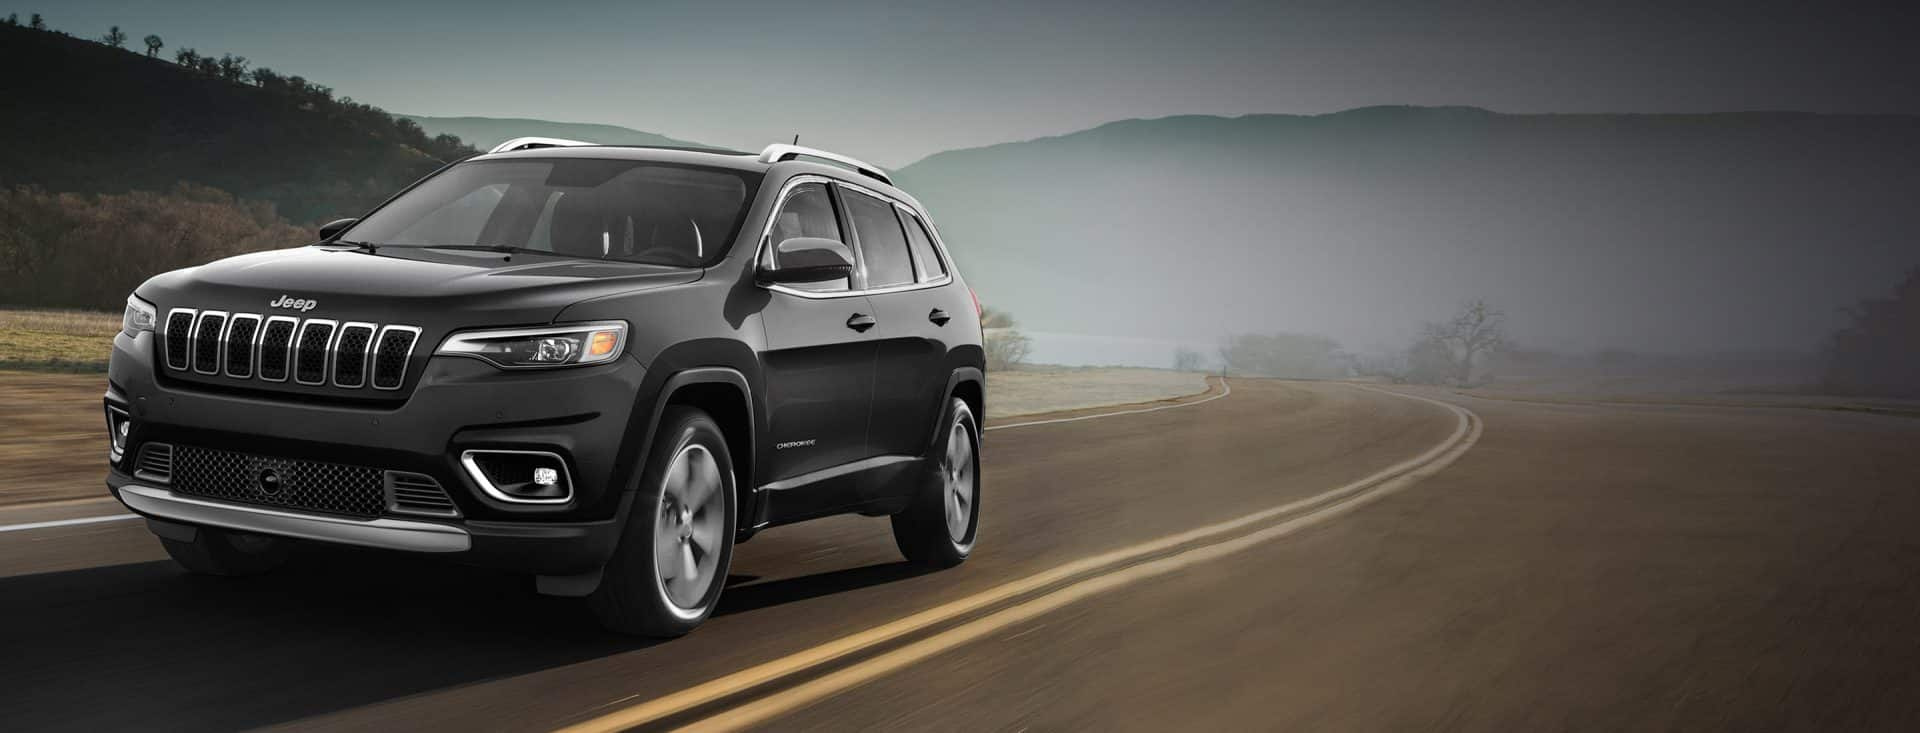 2019 Jeep Cherokee - Discover New Adventures In Style